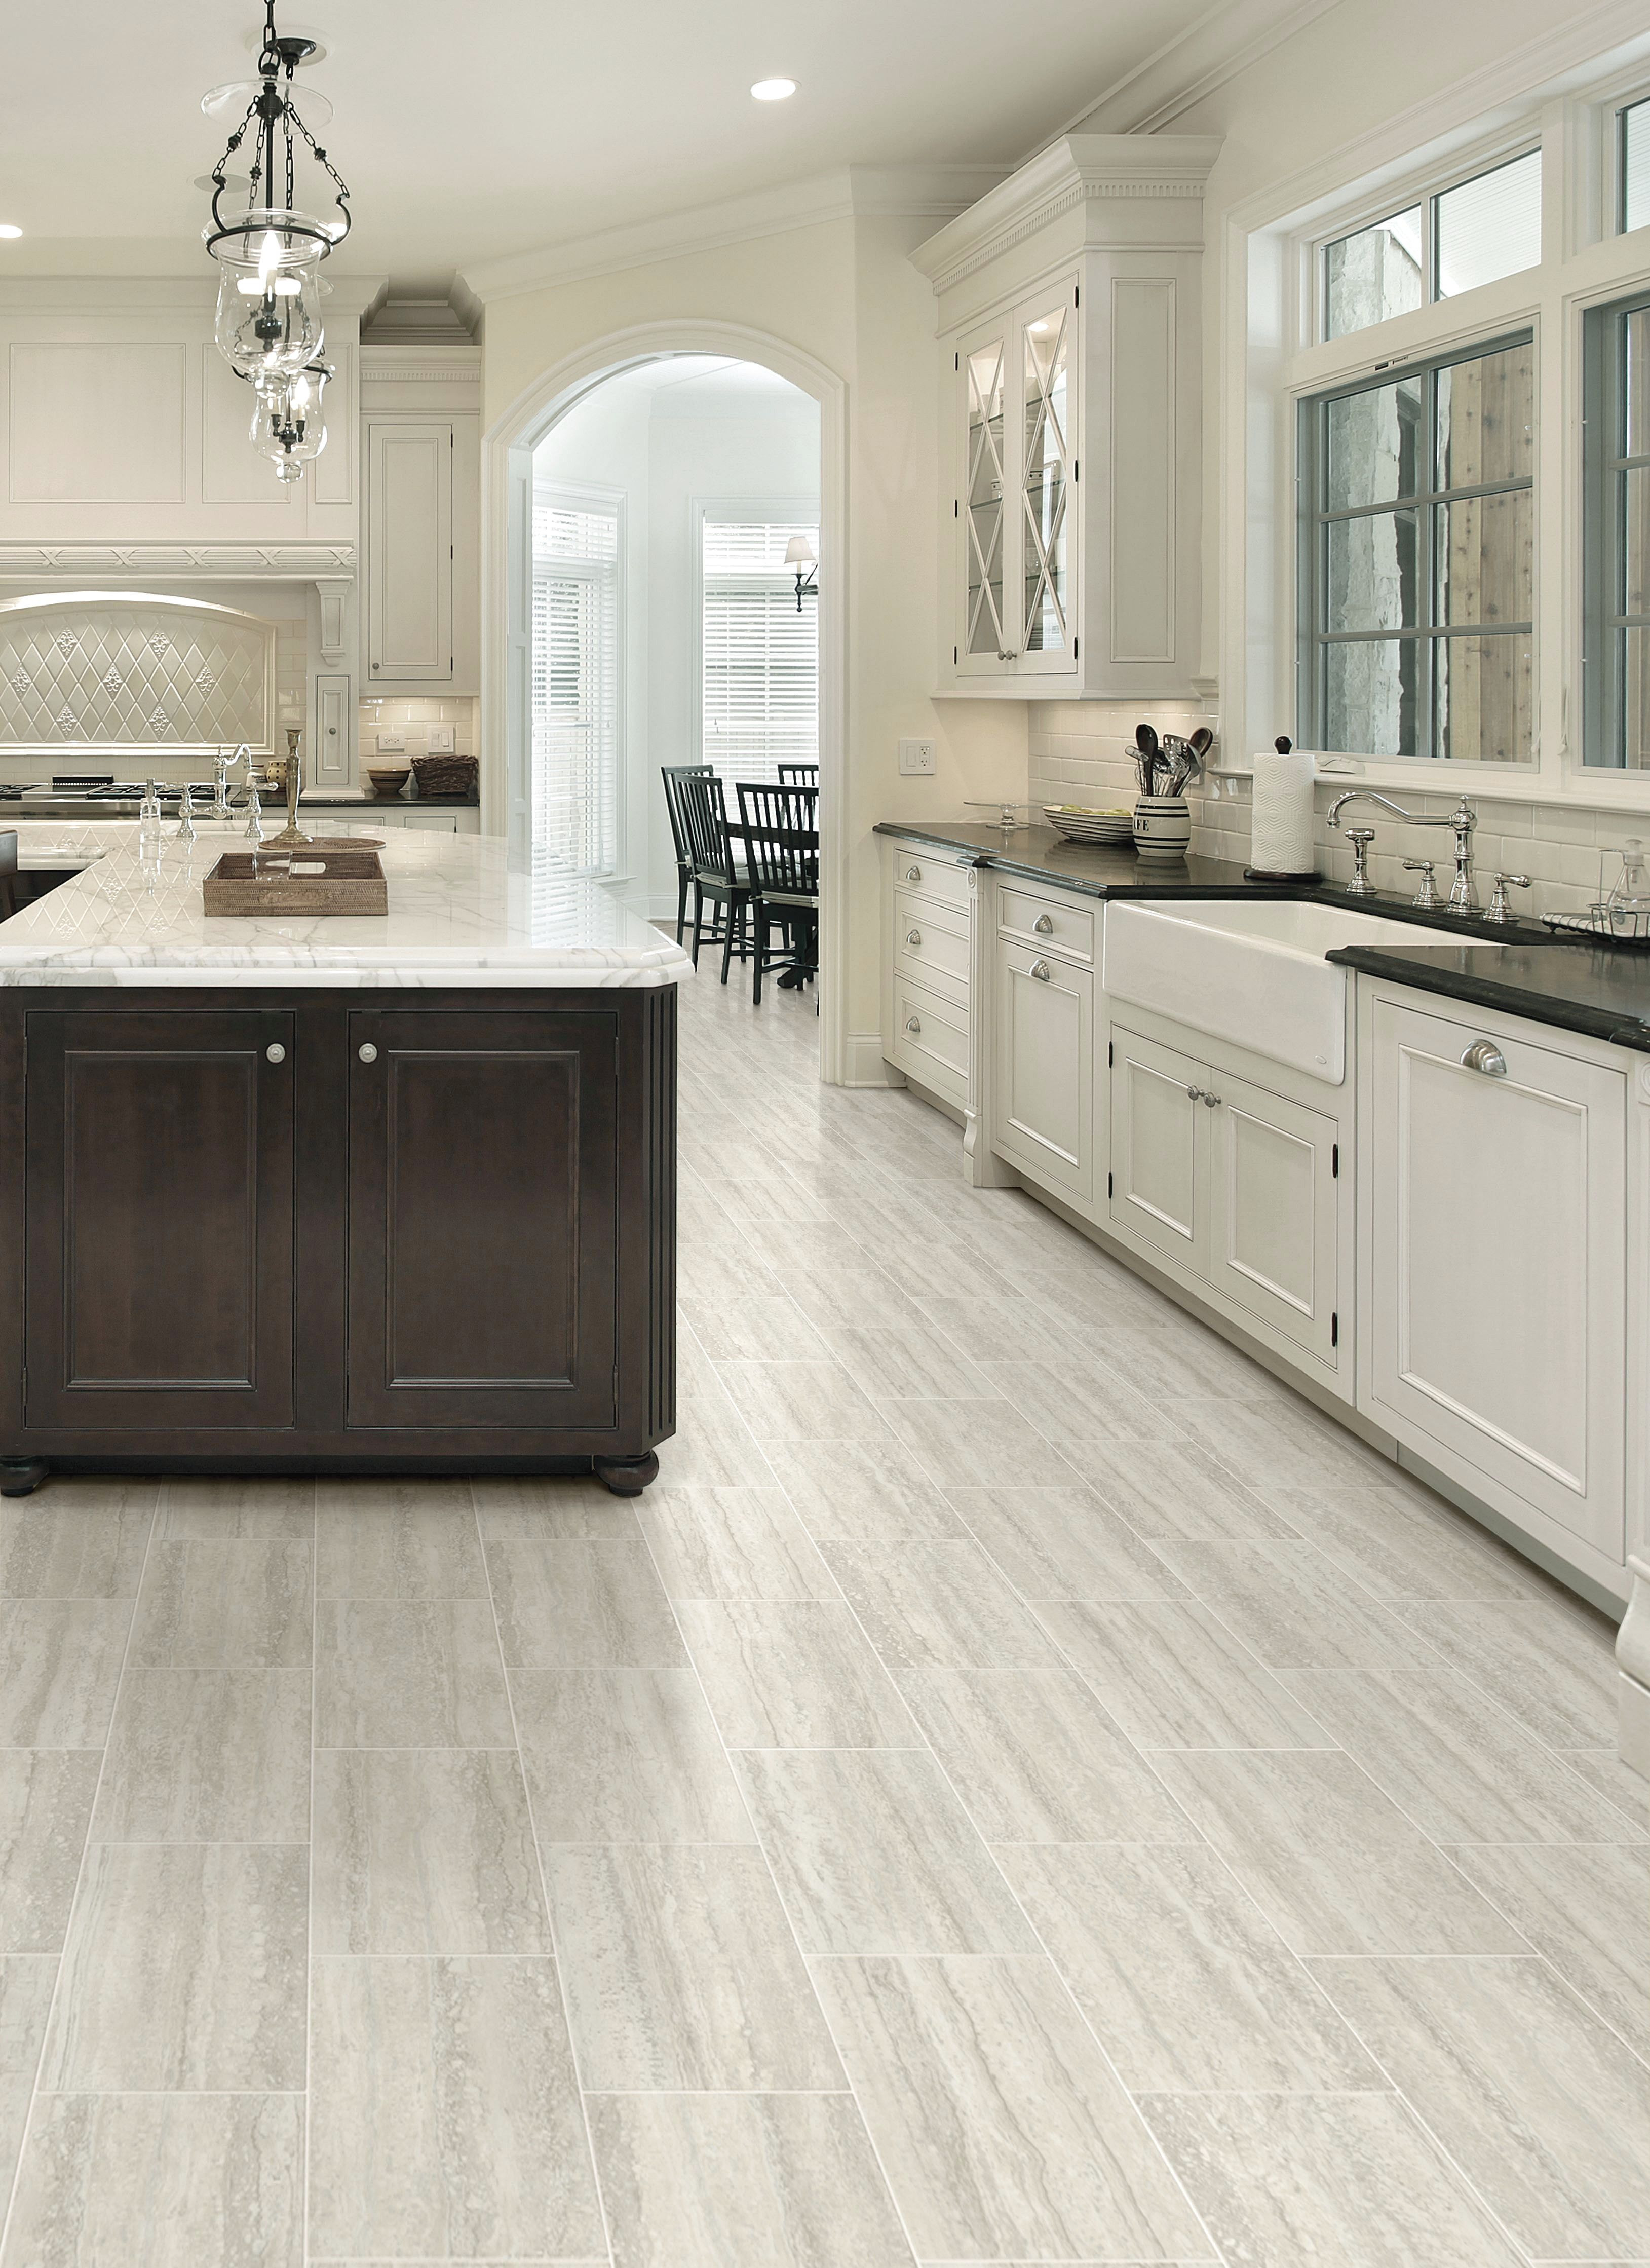 hardwood flooring portland maine of stone flooring cost all about kitchen in 2018 pinterest inside stone flooring cost